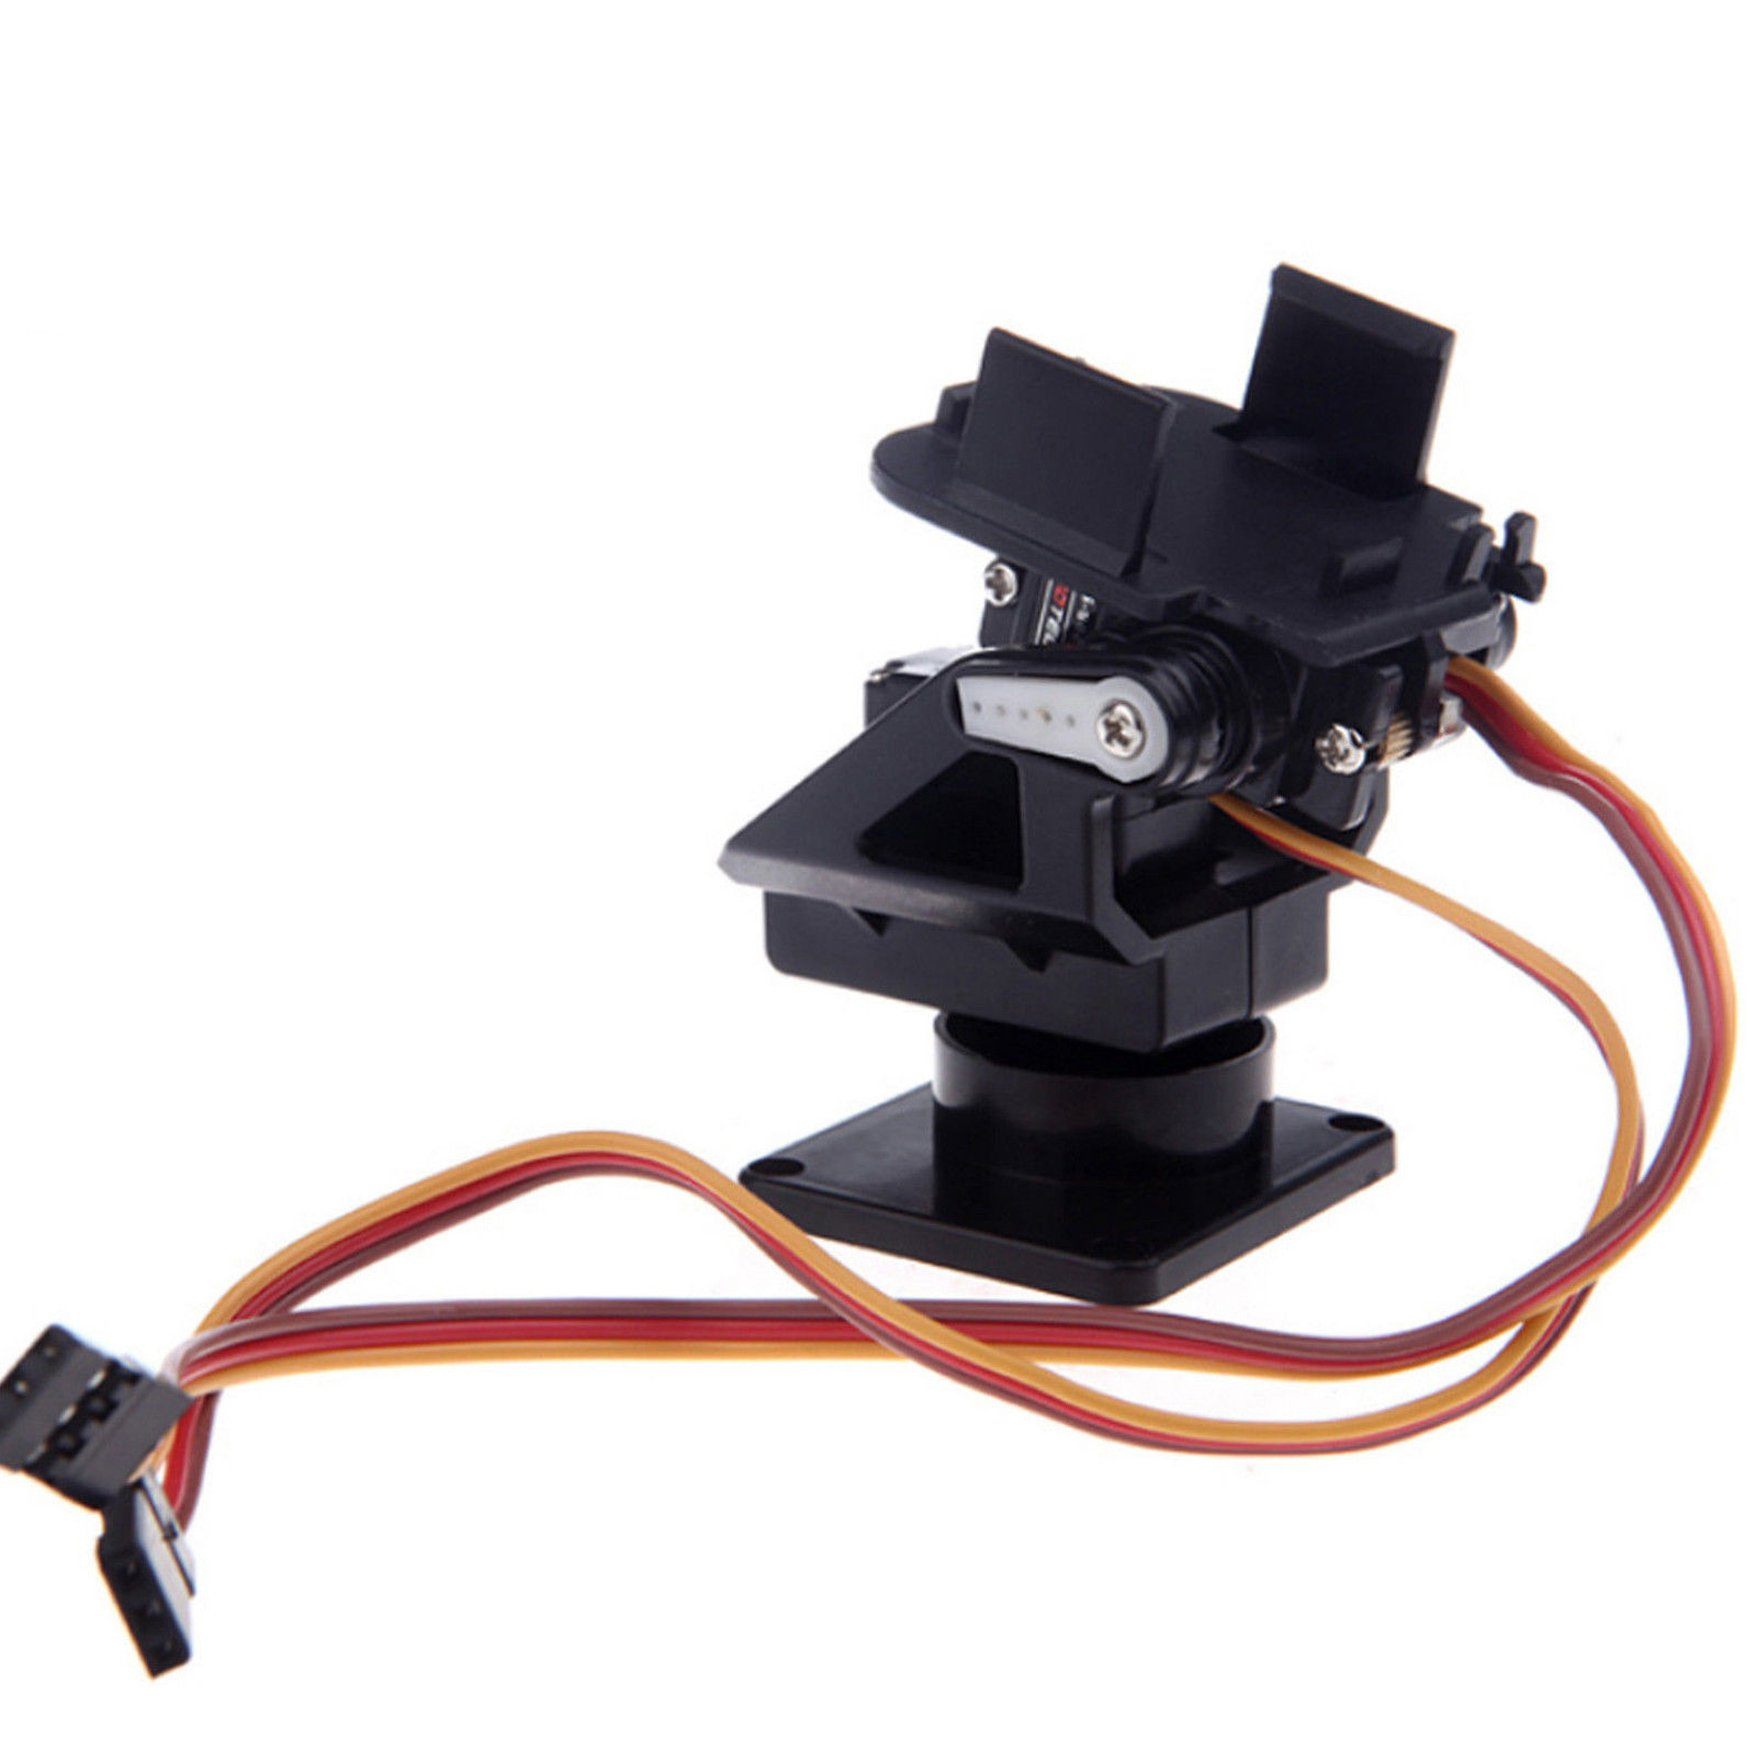 Pan Tilt Servo Gimbal for FPV Drone Board Cameras - Includes 2x 9g Servo by USAQ